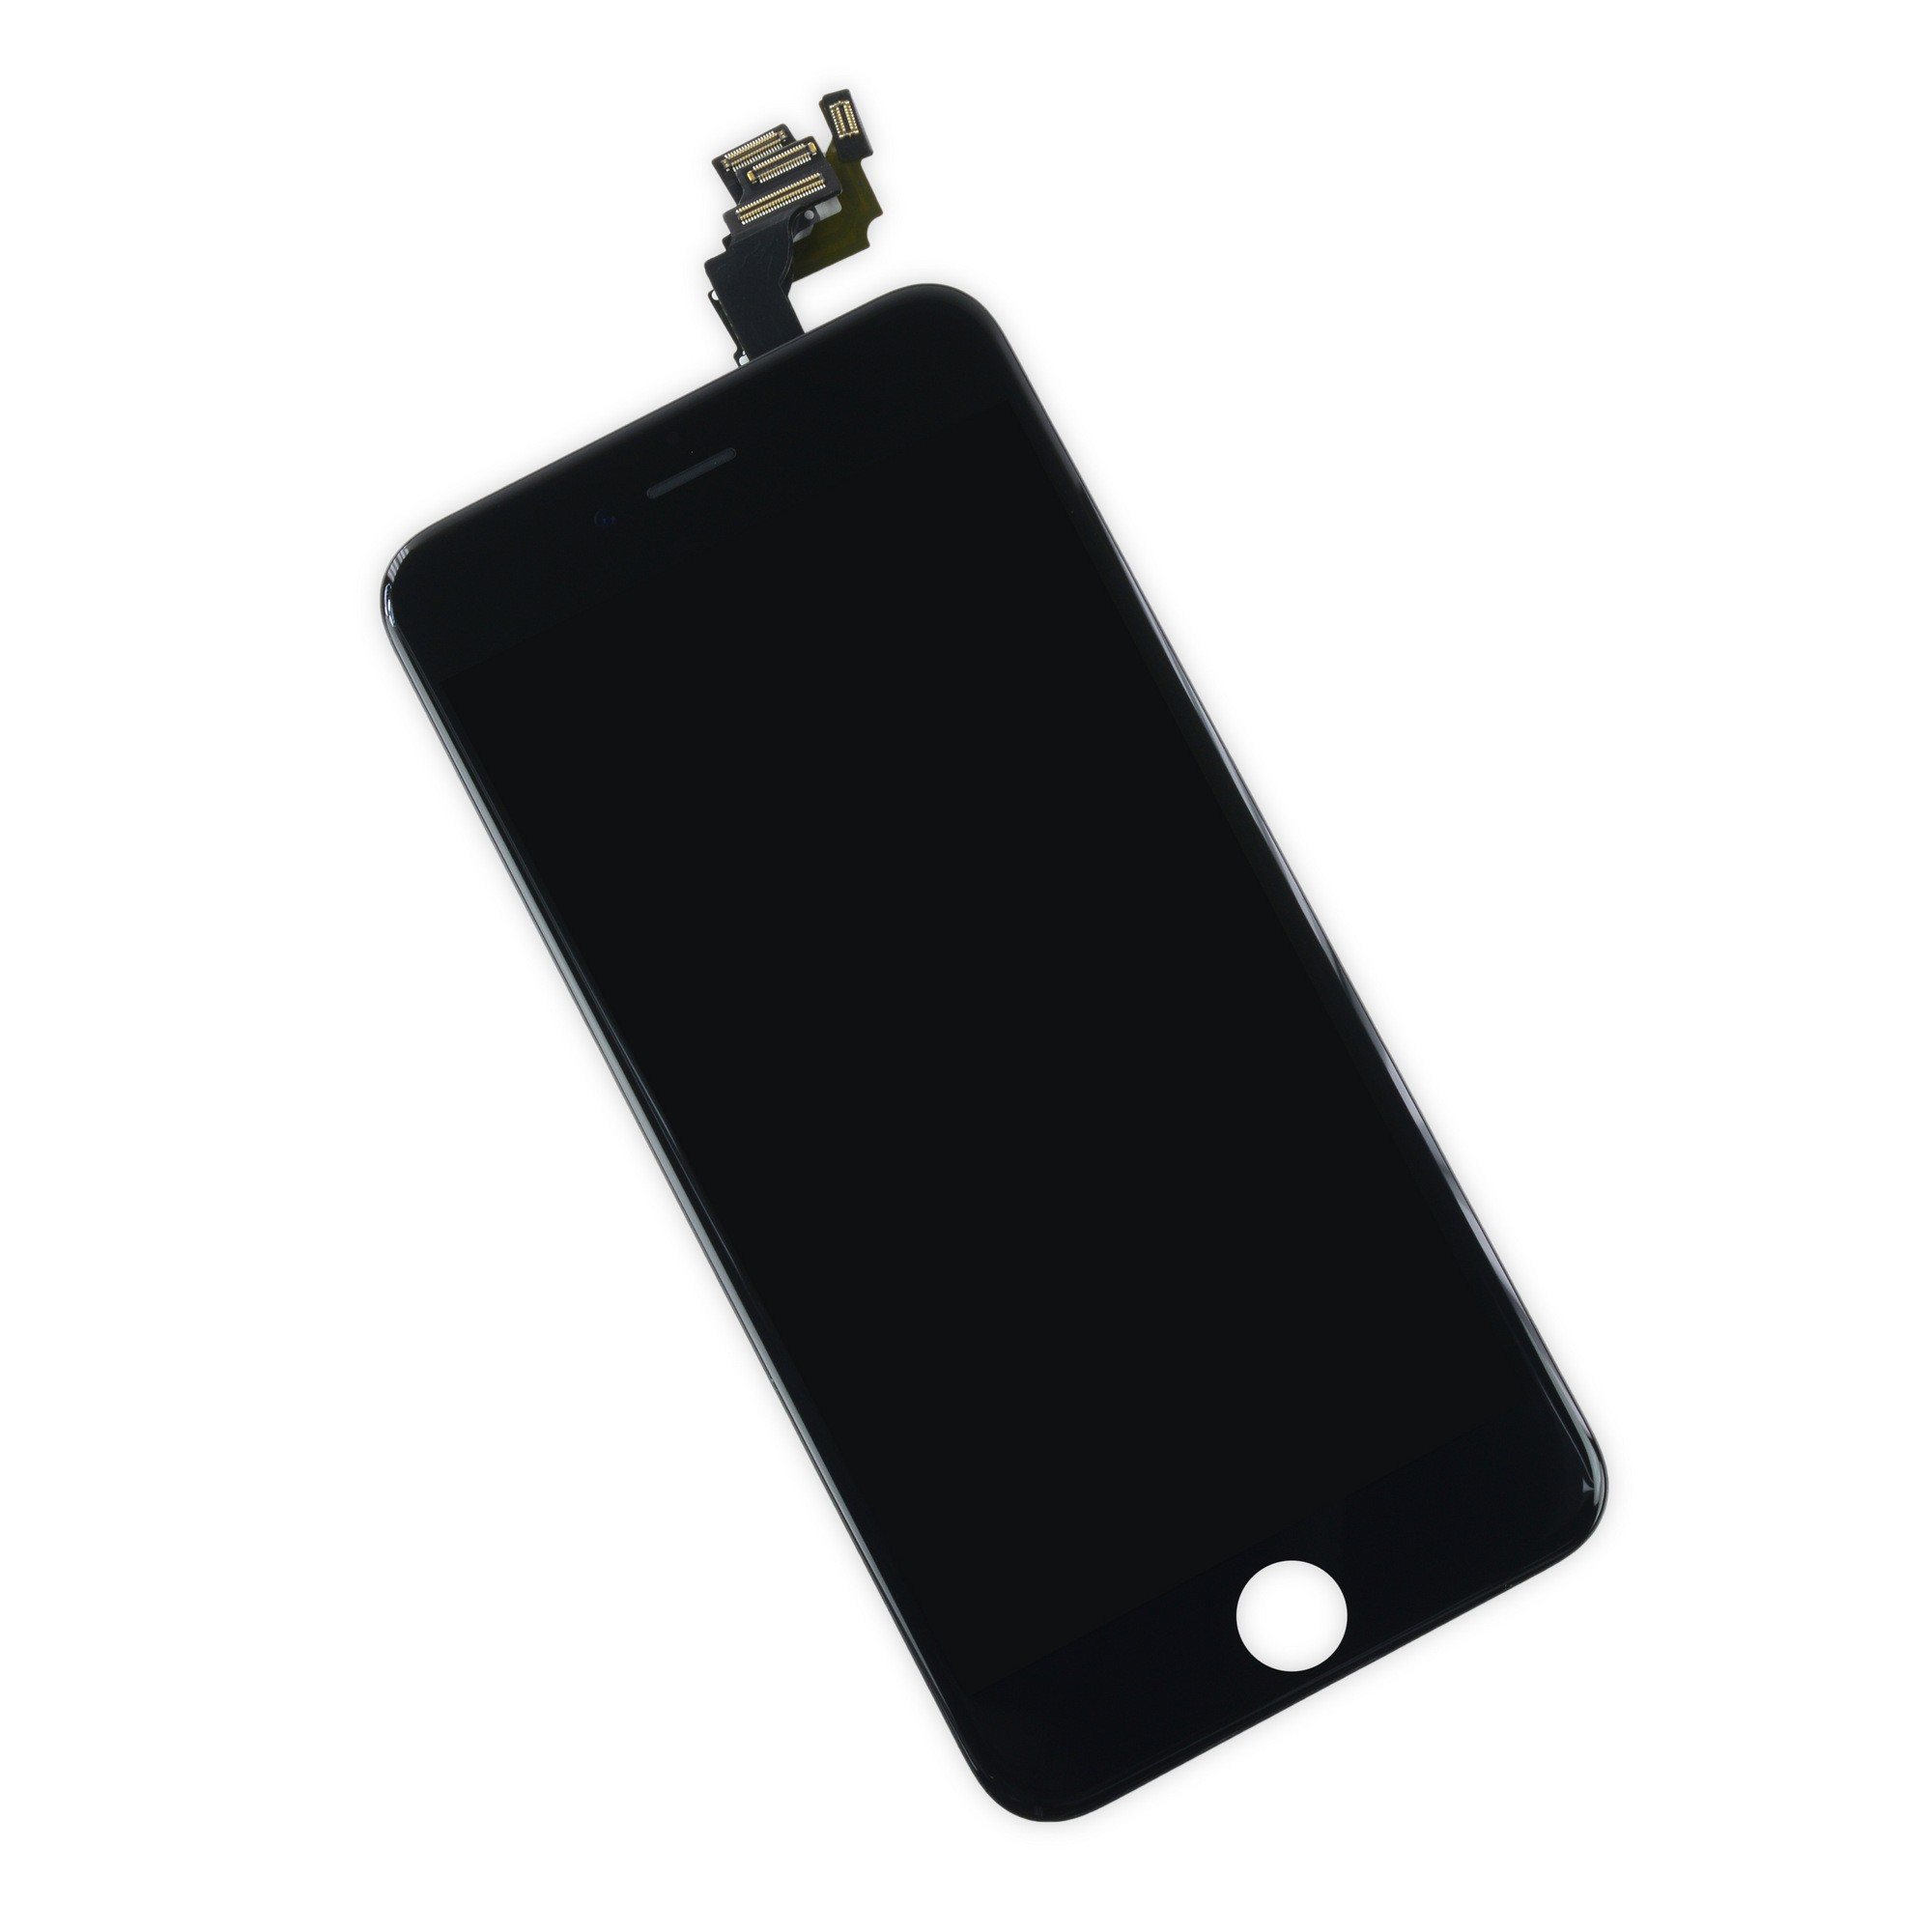 iFixit iPhone 6 Plus LCD Screen and Digitizer Full Assembly - Black - Full Repair Kit Including Tools, IF269-000-11